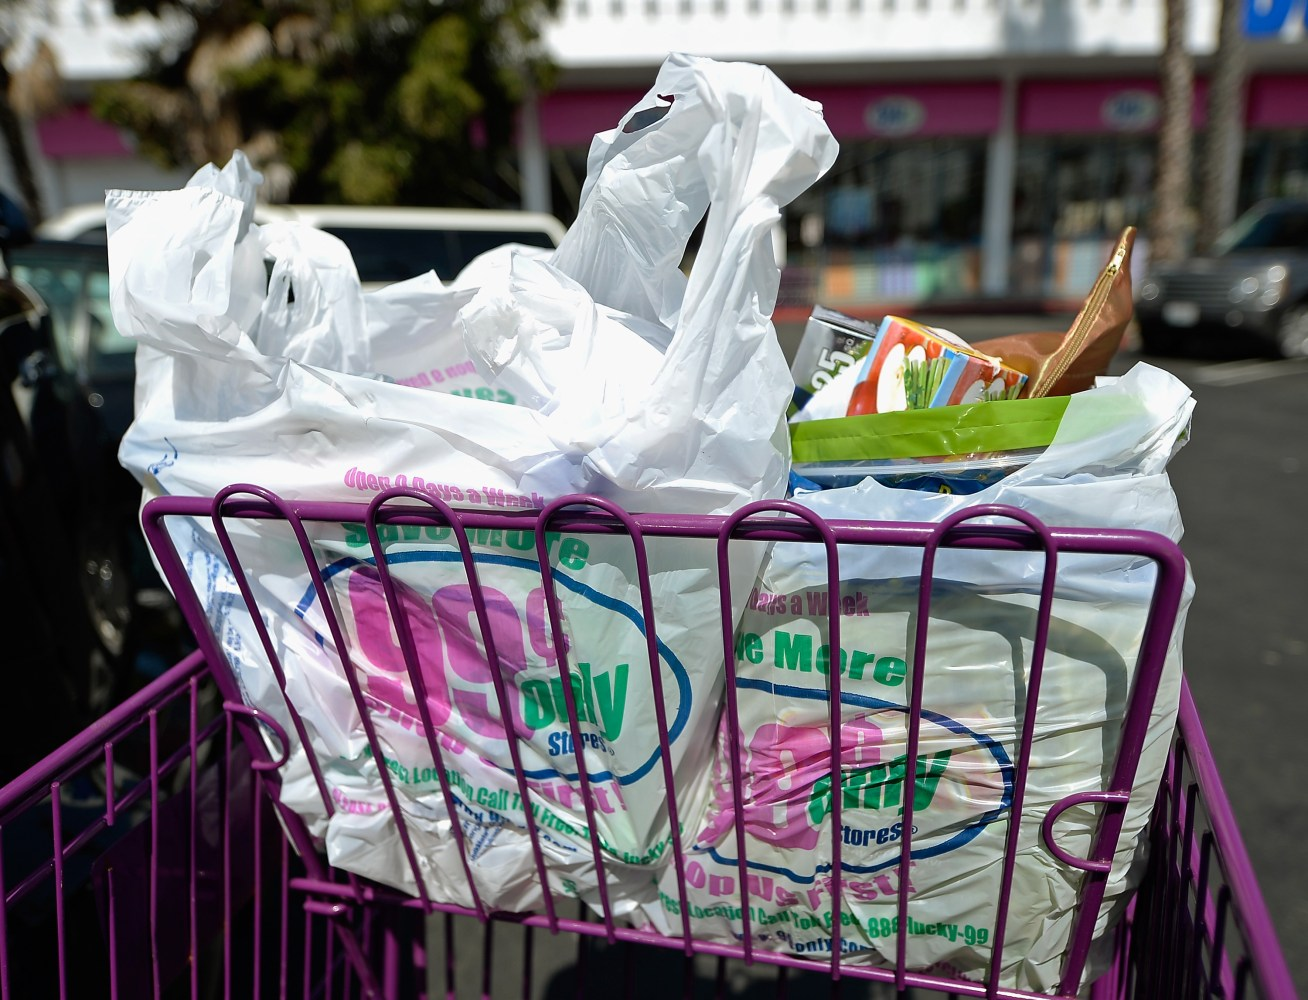 bag it in nyc plan sees dime charge for plastic or paper nbc news. Black Bedroom Furniture Sets. Home Design Ideas